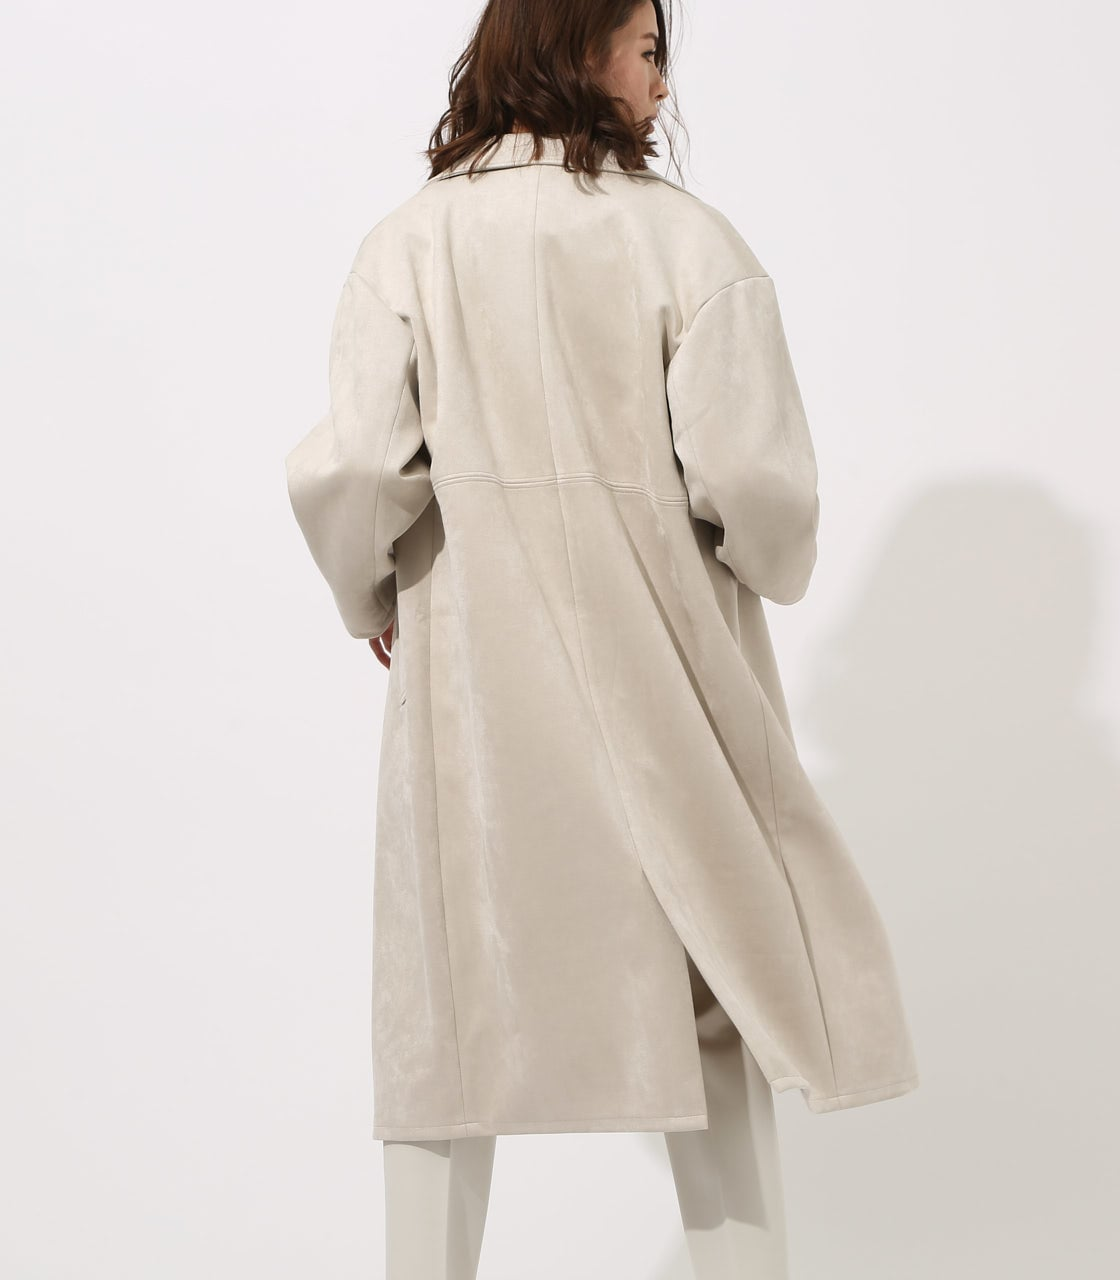 FAKE SUEDE CHESTER COAT 詳細画像 L/GRY 3